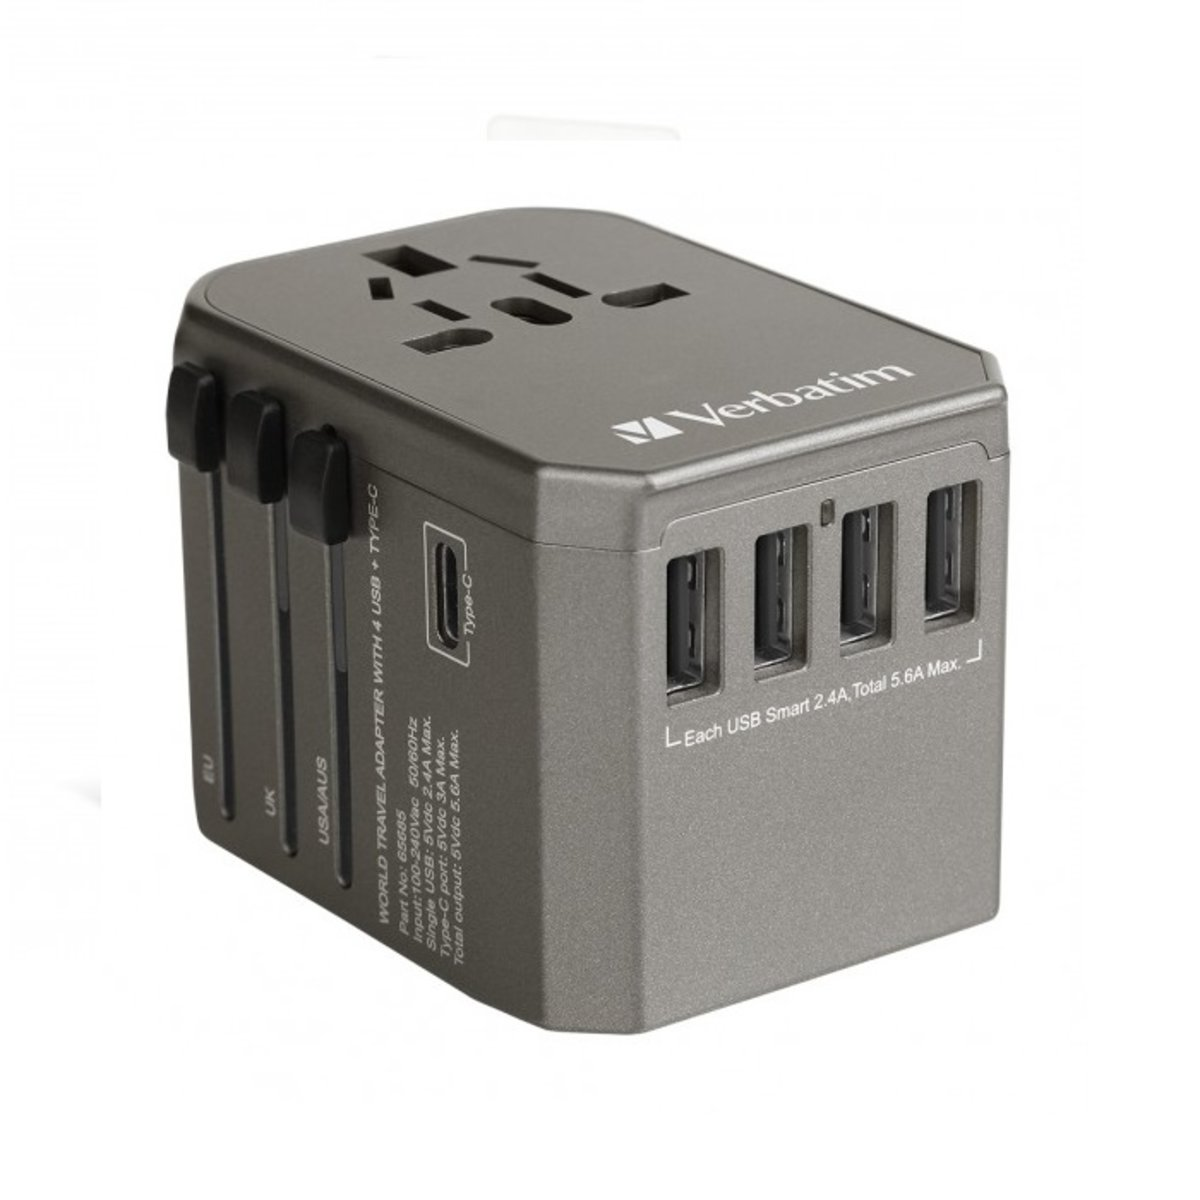 5.6 A OUTPUT MAX ( TYPE-C + 4 X USB PORT ) UNIVERSAL TRAVEL ADAPTER - SPACE GREY ( 65685 )